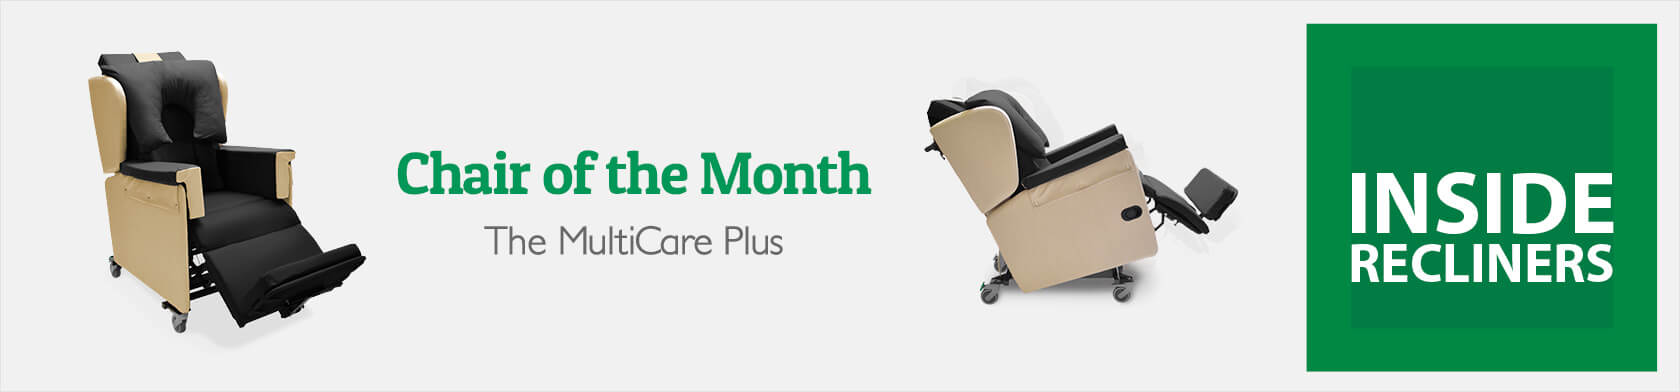 Chair of the Month – The MultiCare Plus